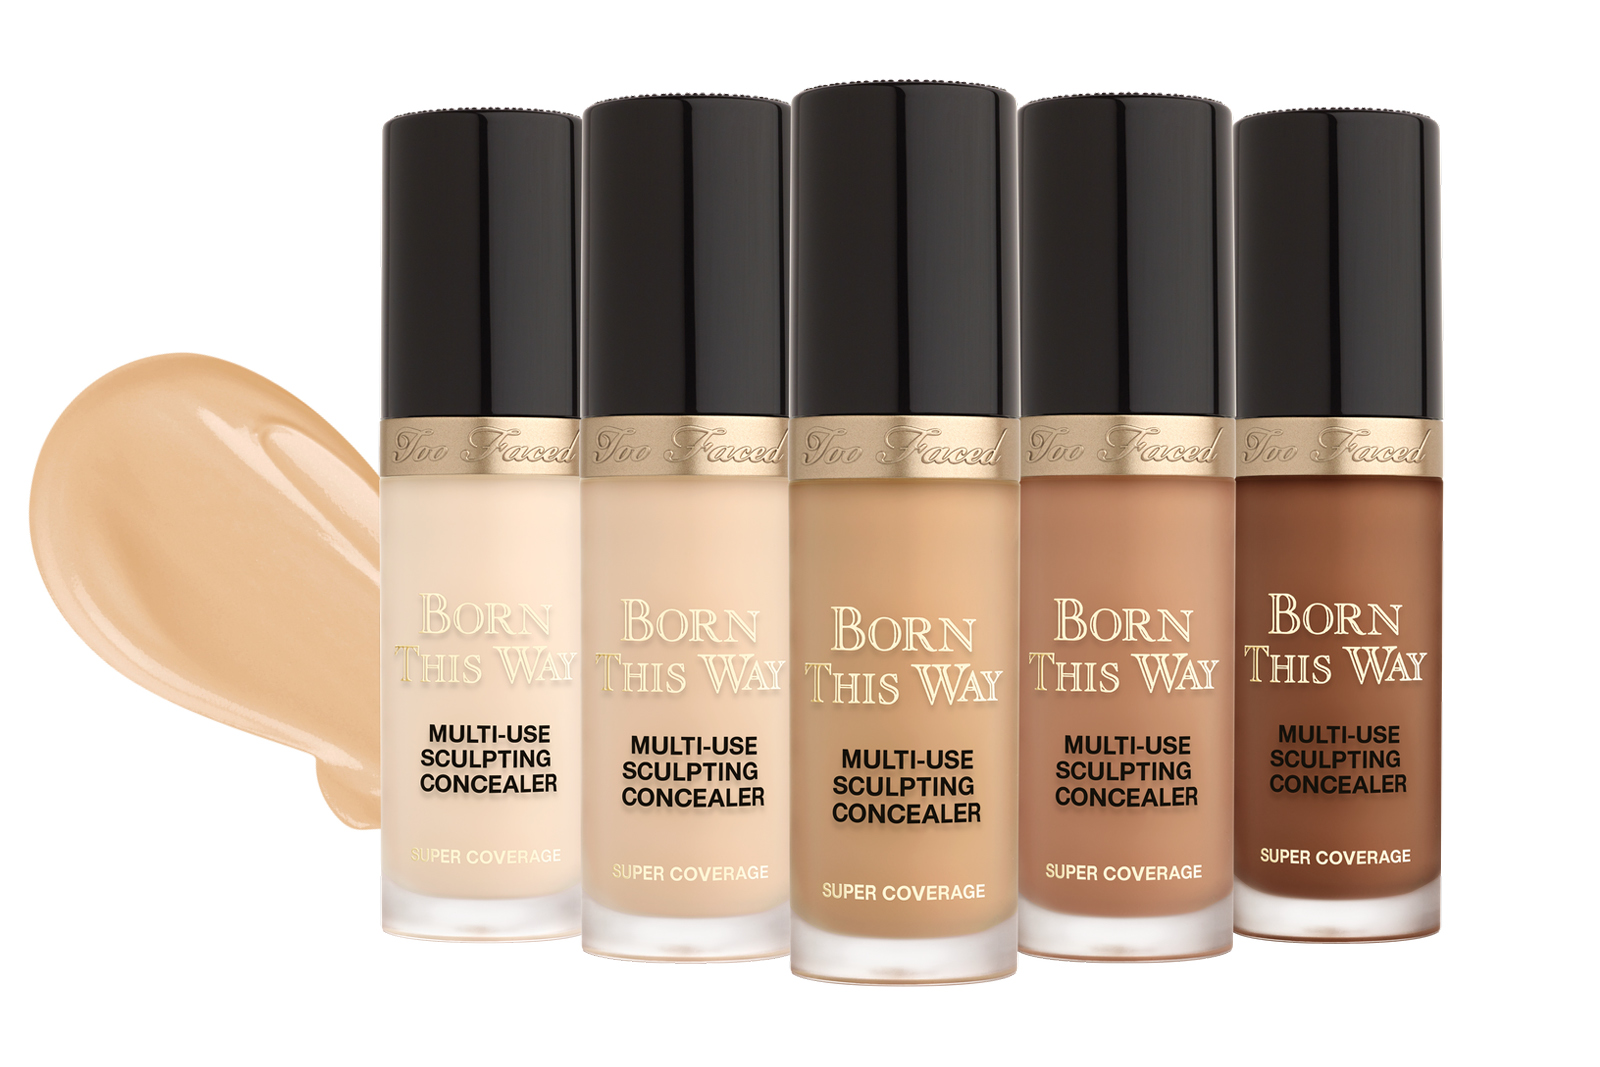 Too Faced Born This Way Multi Use Sculpting Concealer Mecca